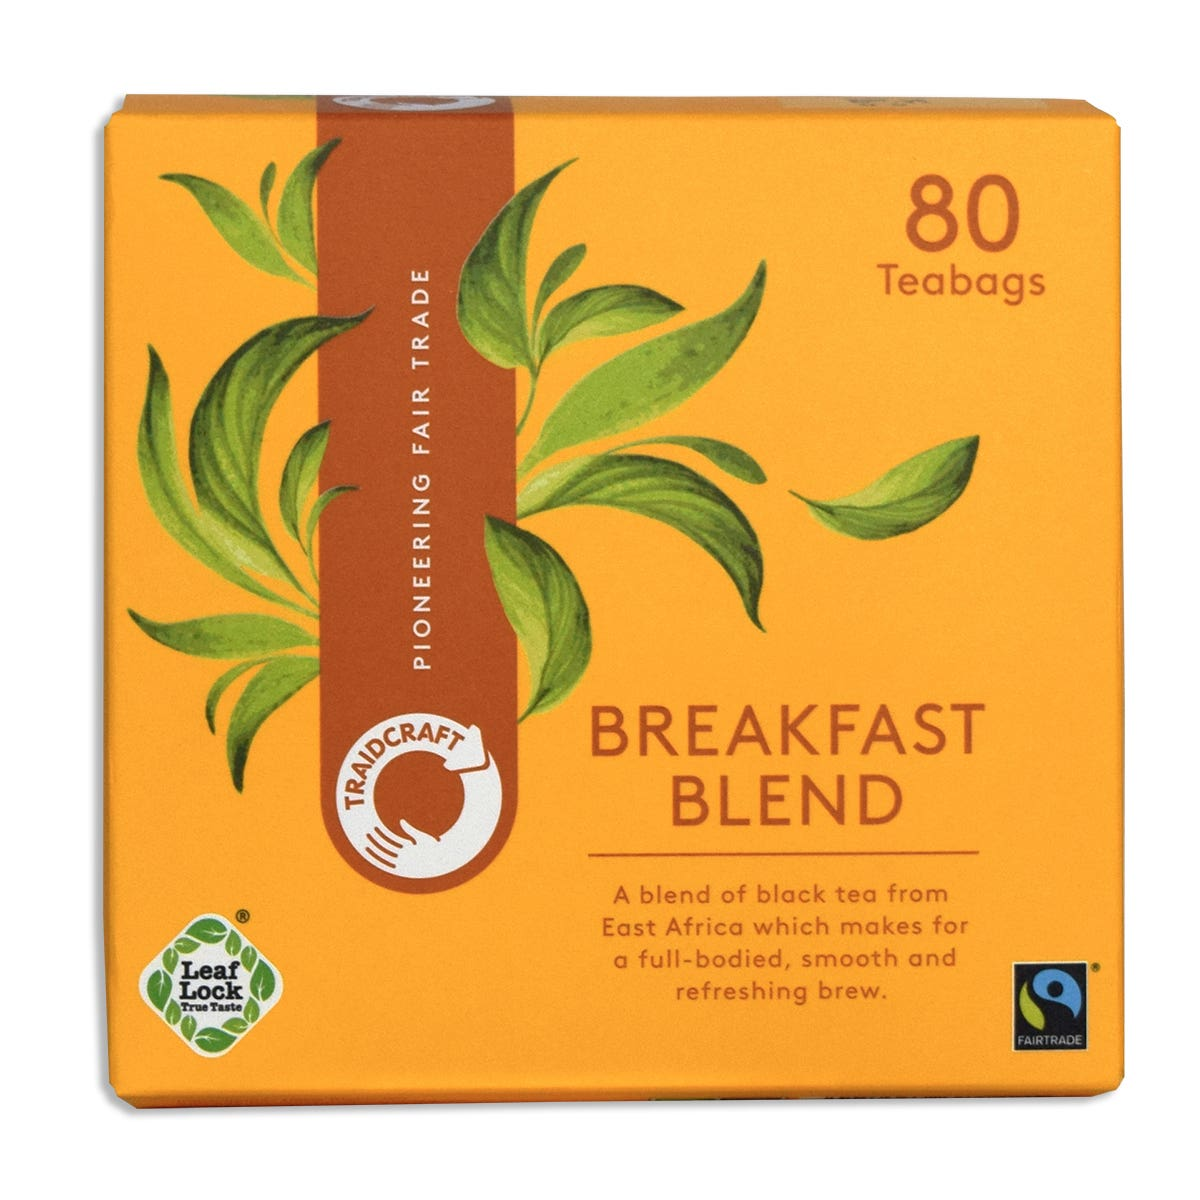 Traidcraft Breakfast Blend Tea Bags (80 bags)